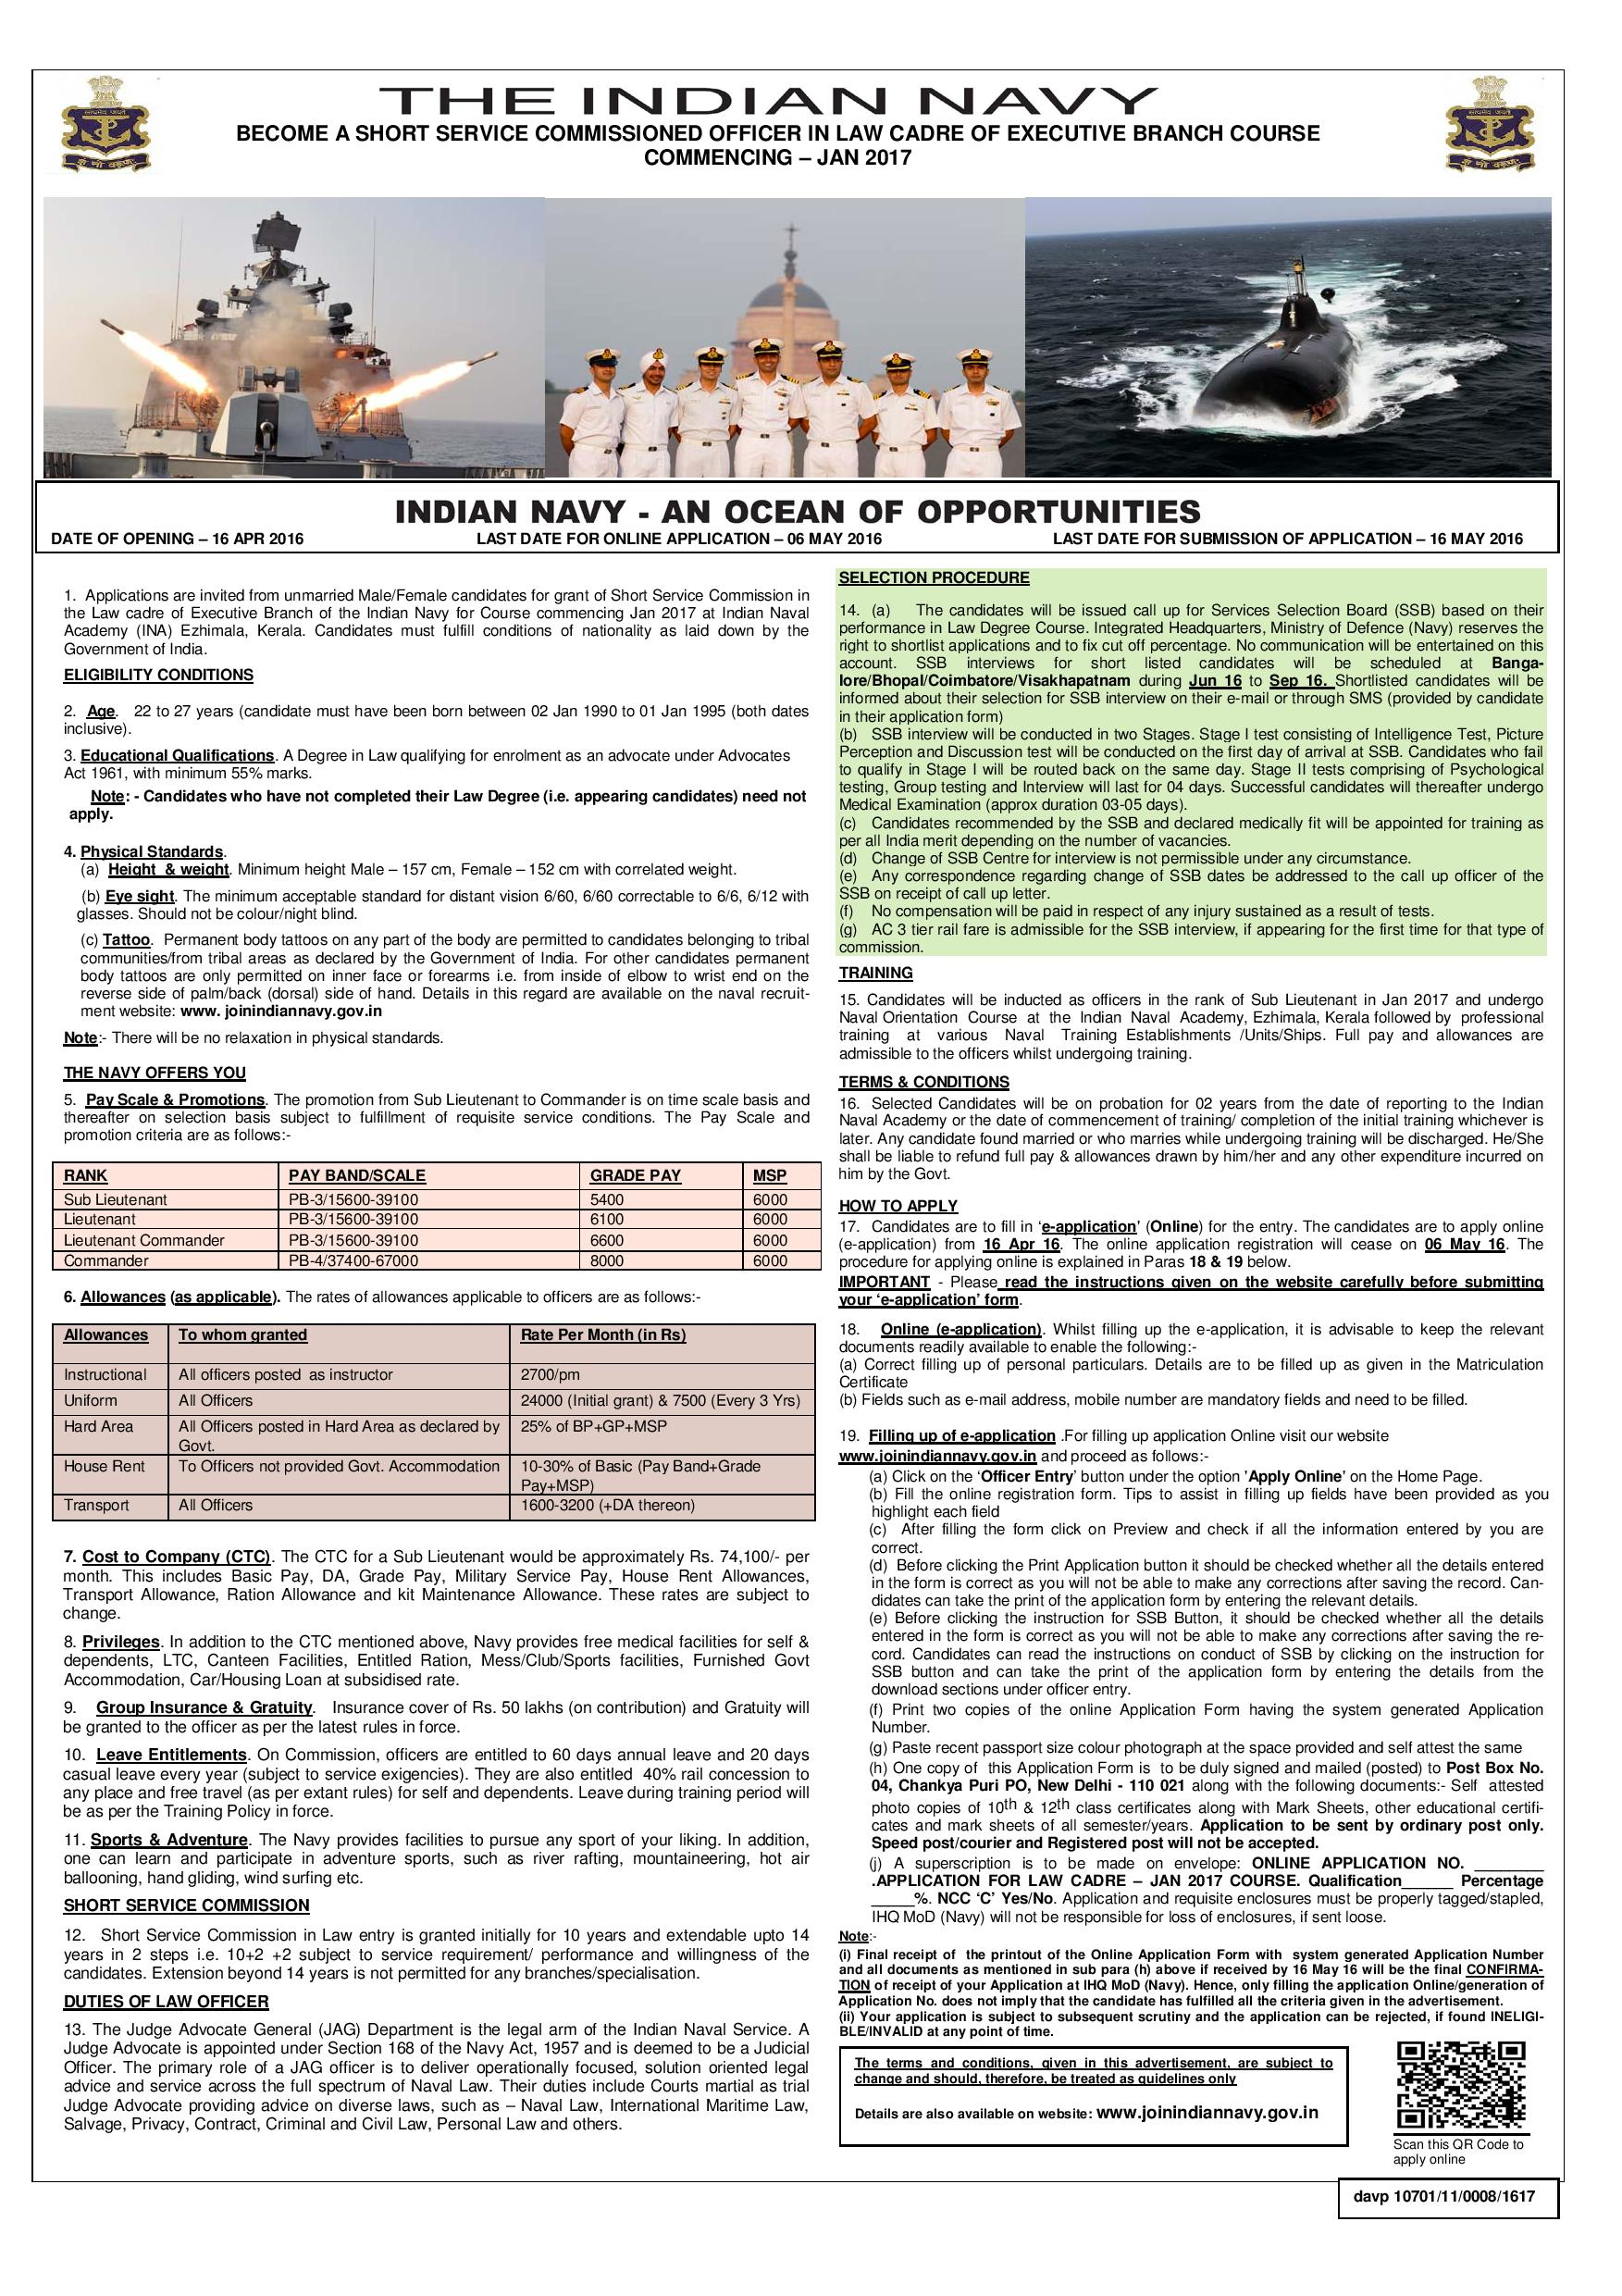 JOB POST: SSC Officer Law Cadre Executive Vacancy in Indian Navy